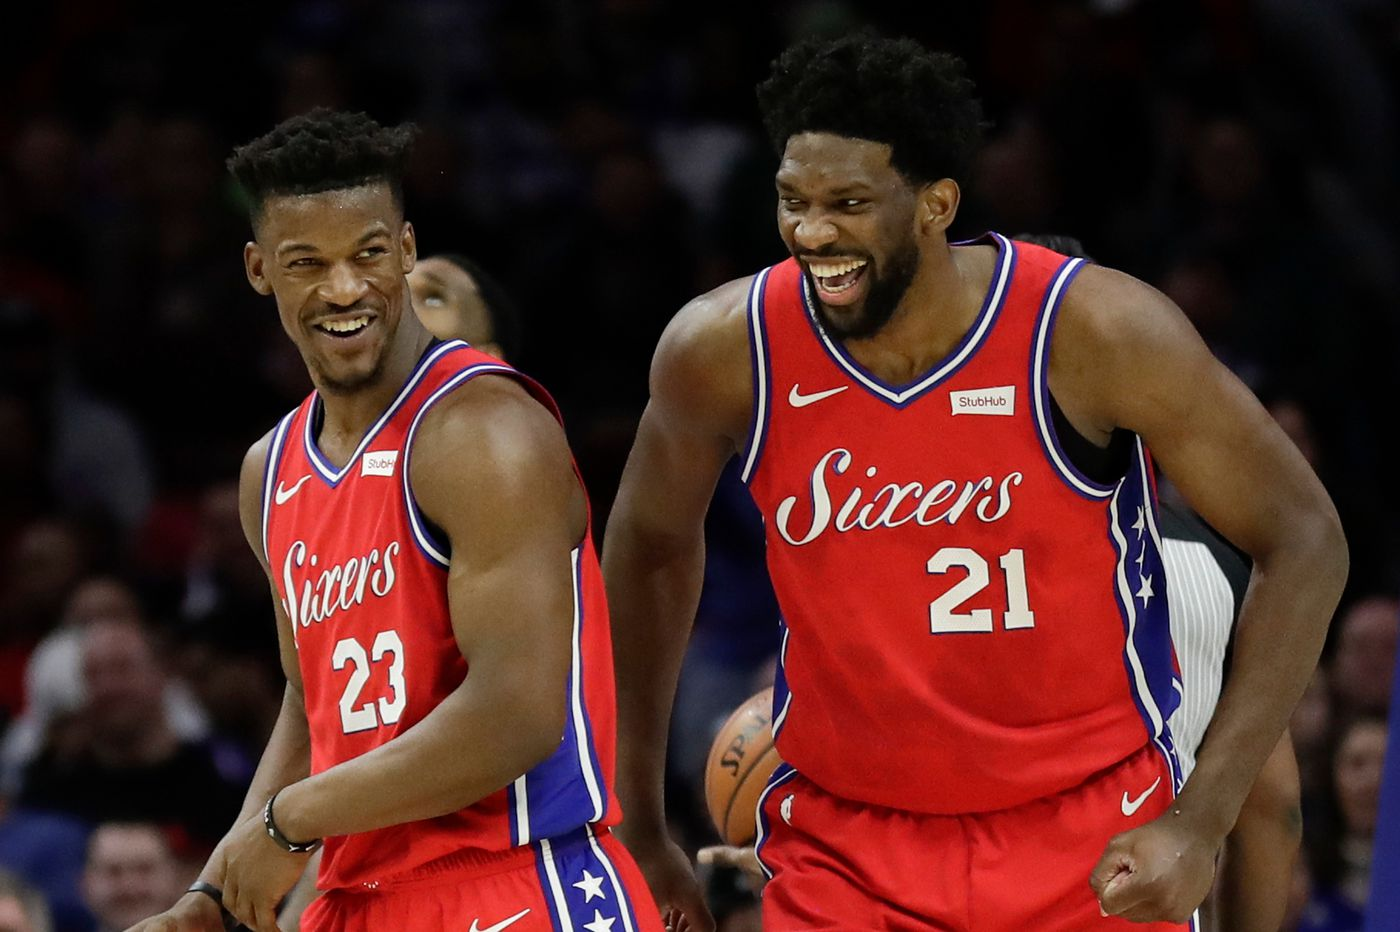 No time to rest Sixers starters because of needed jelling and pursuit of third seed